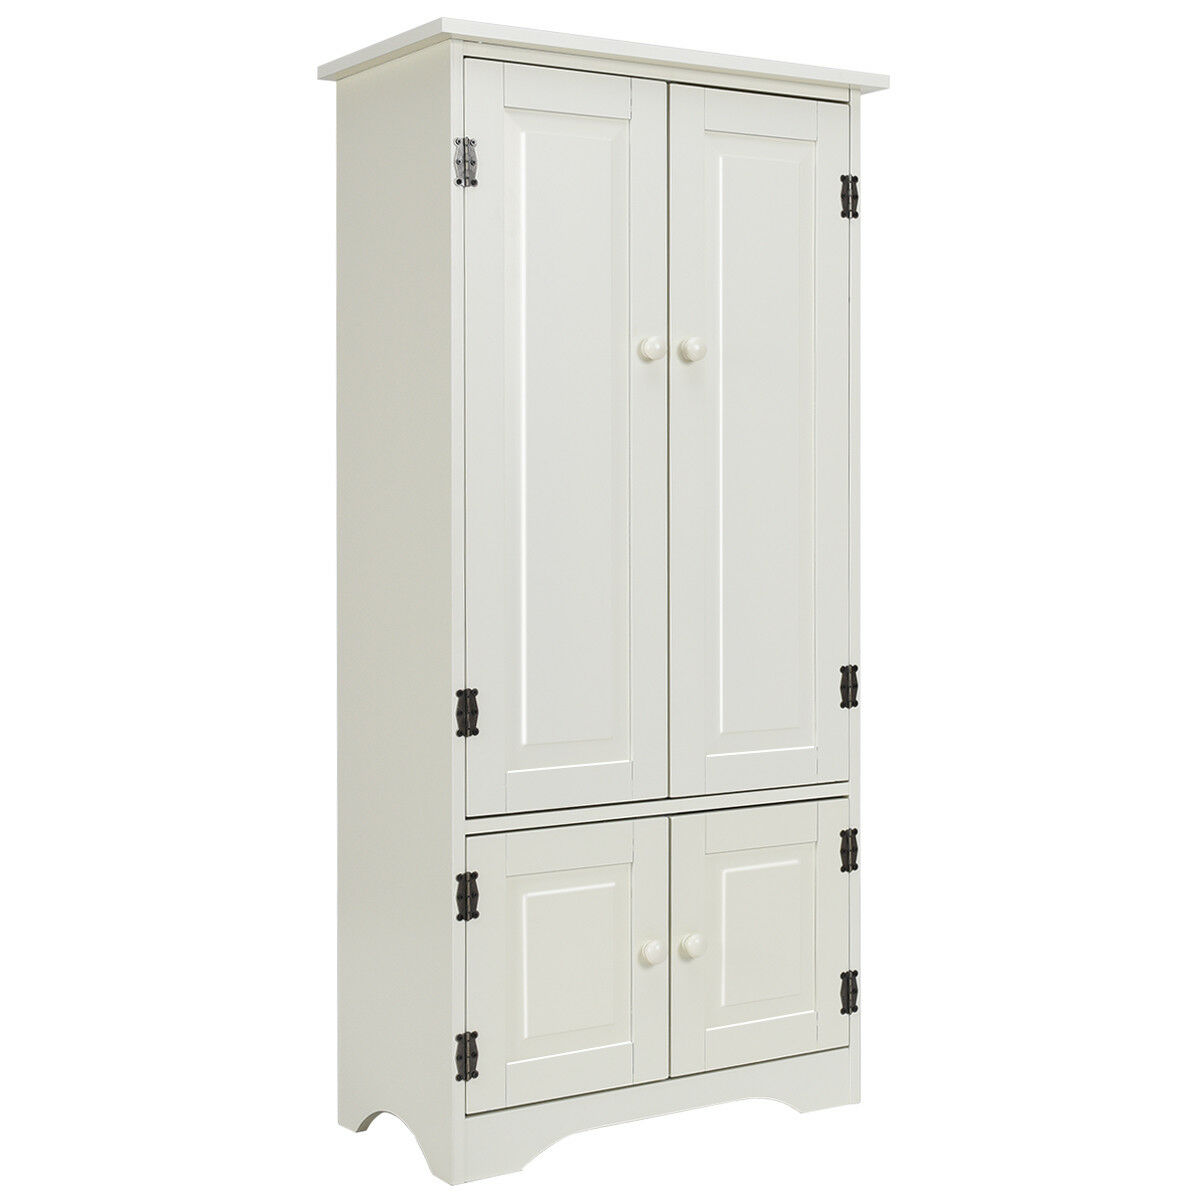 Costway Accent Storage Cabinet Adjustable Shelves Antique 2 Door